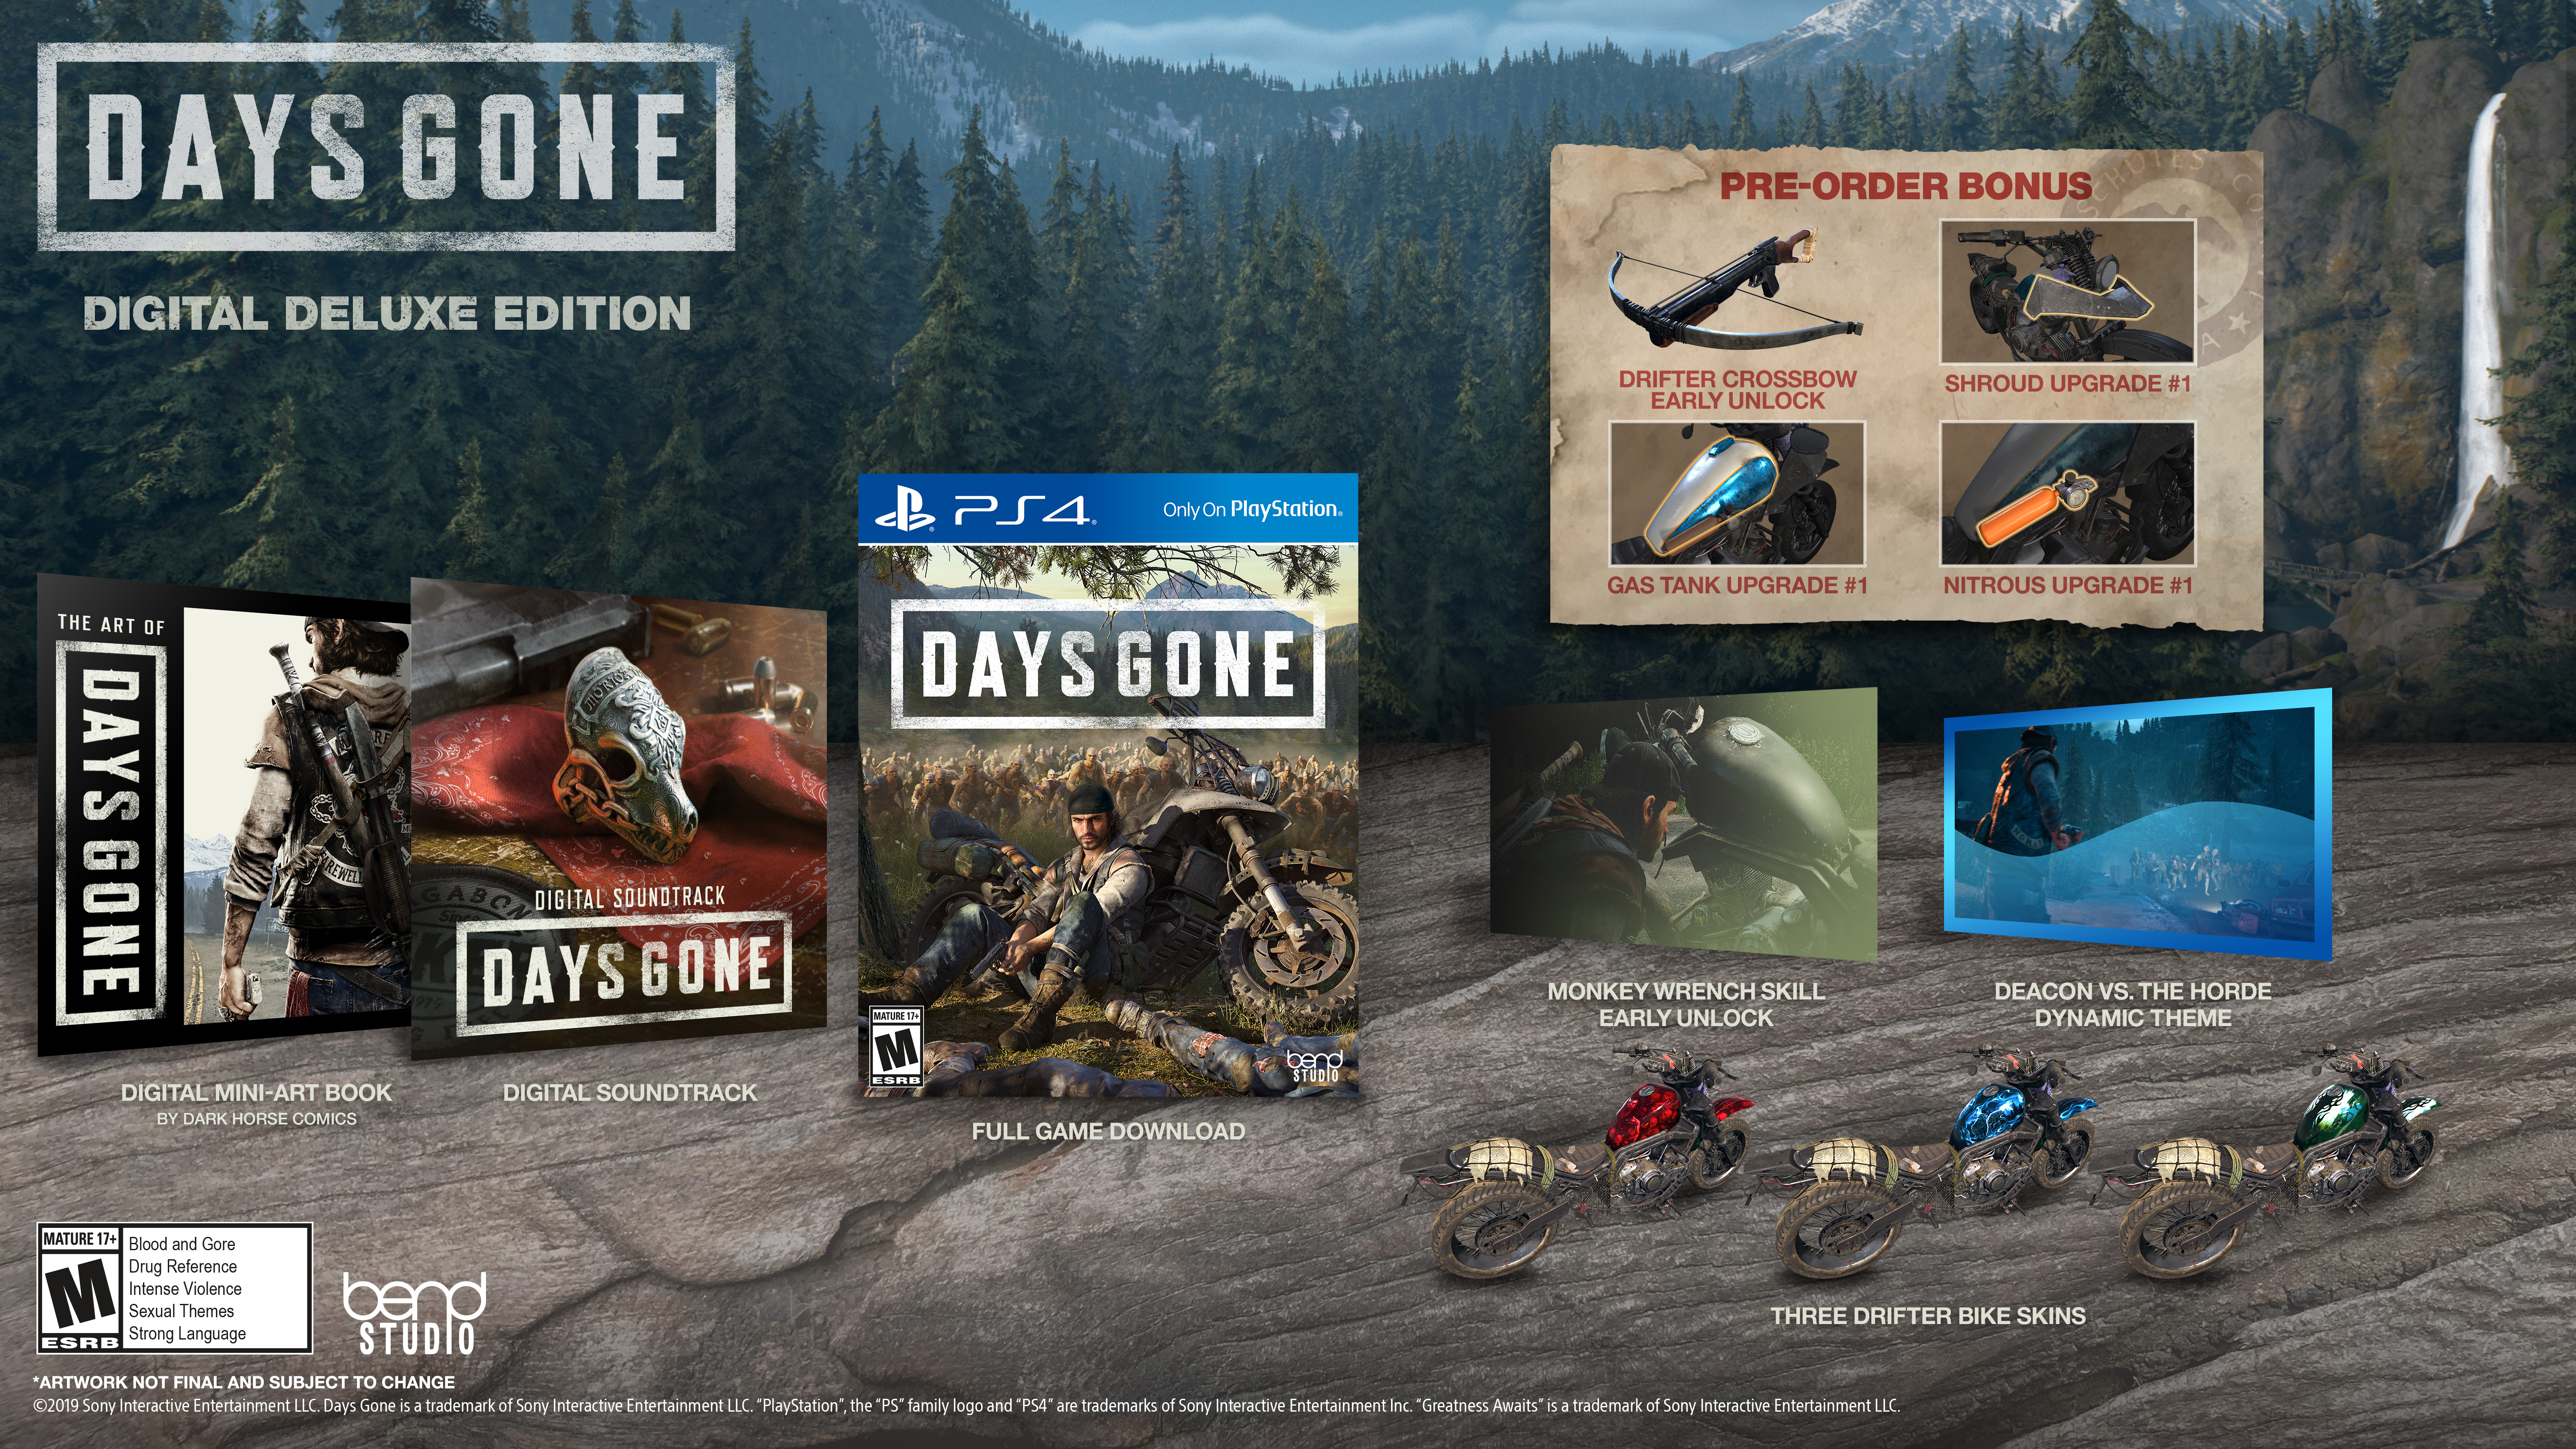 Digital Deluxe Edition - Days Gone